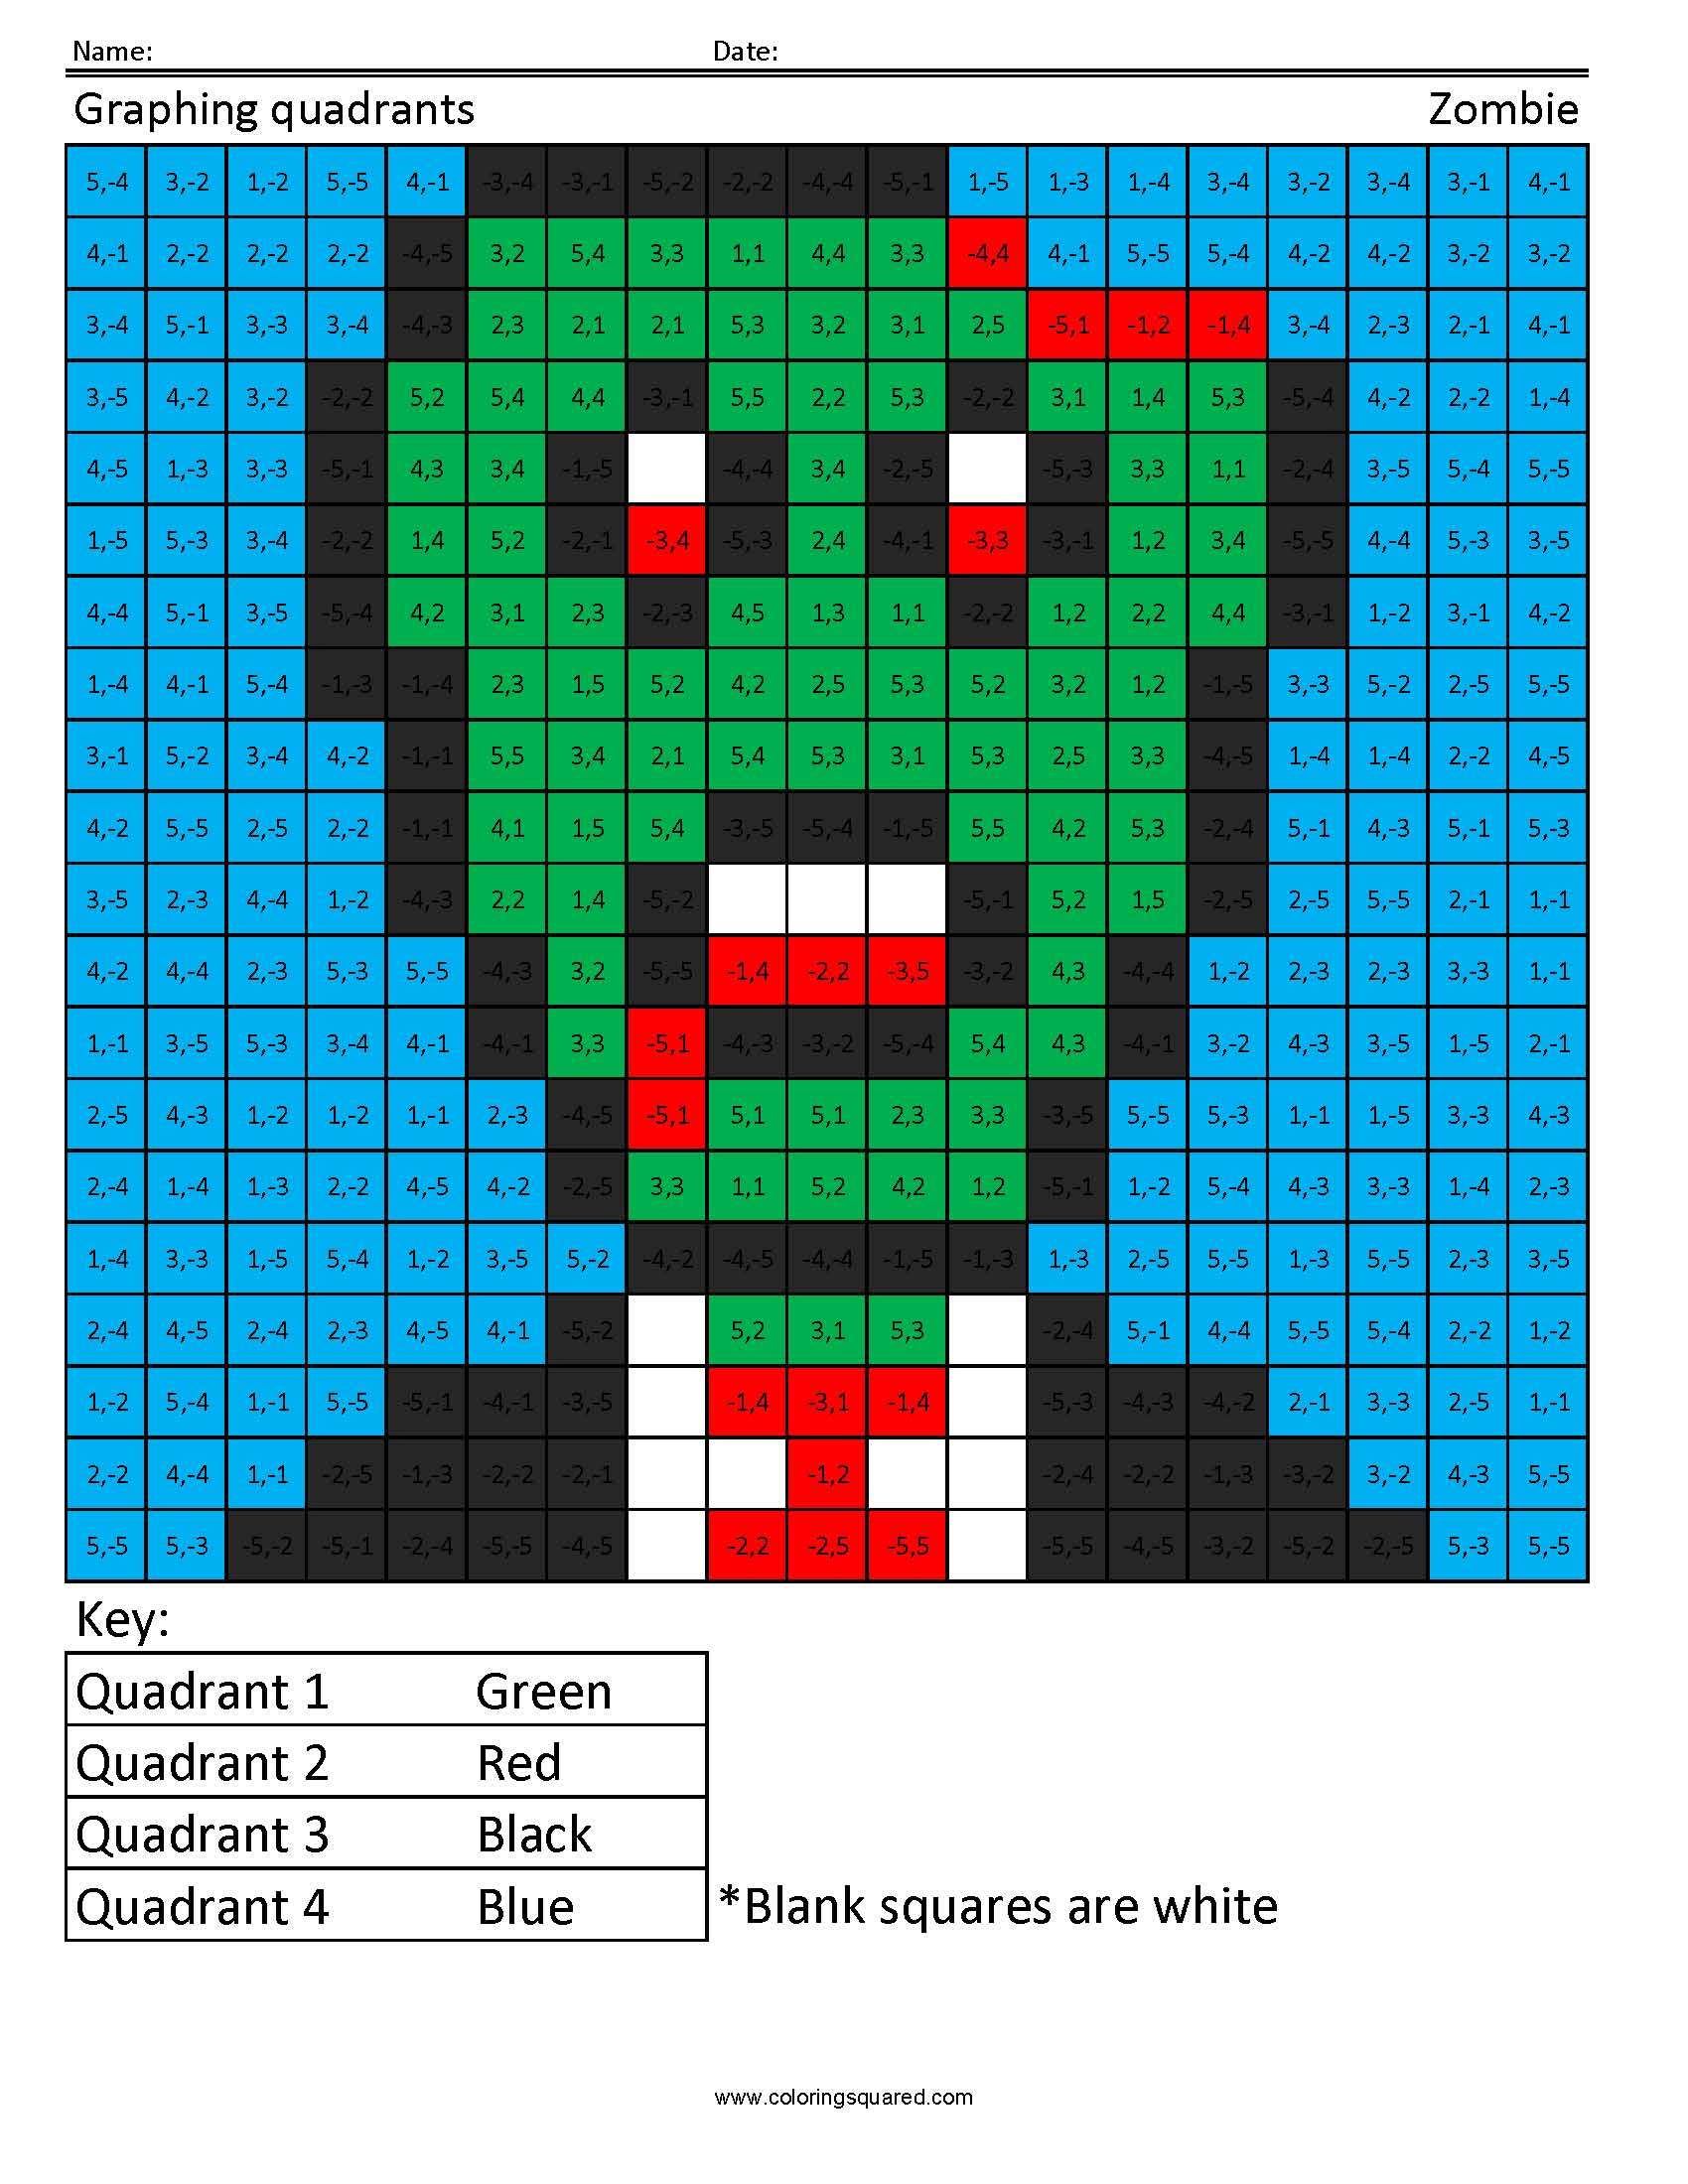 3gm Quadrants Zombie Geometry And Measurement